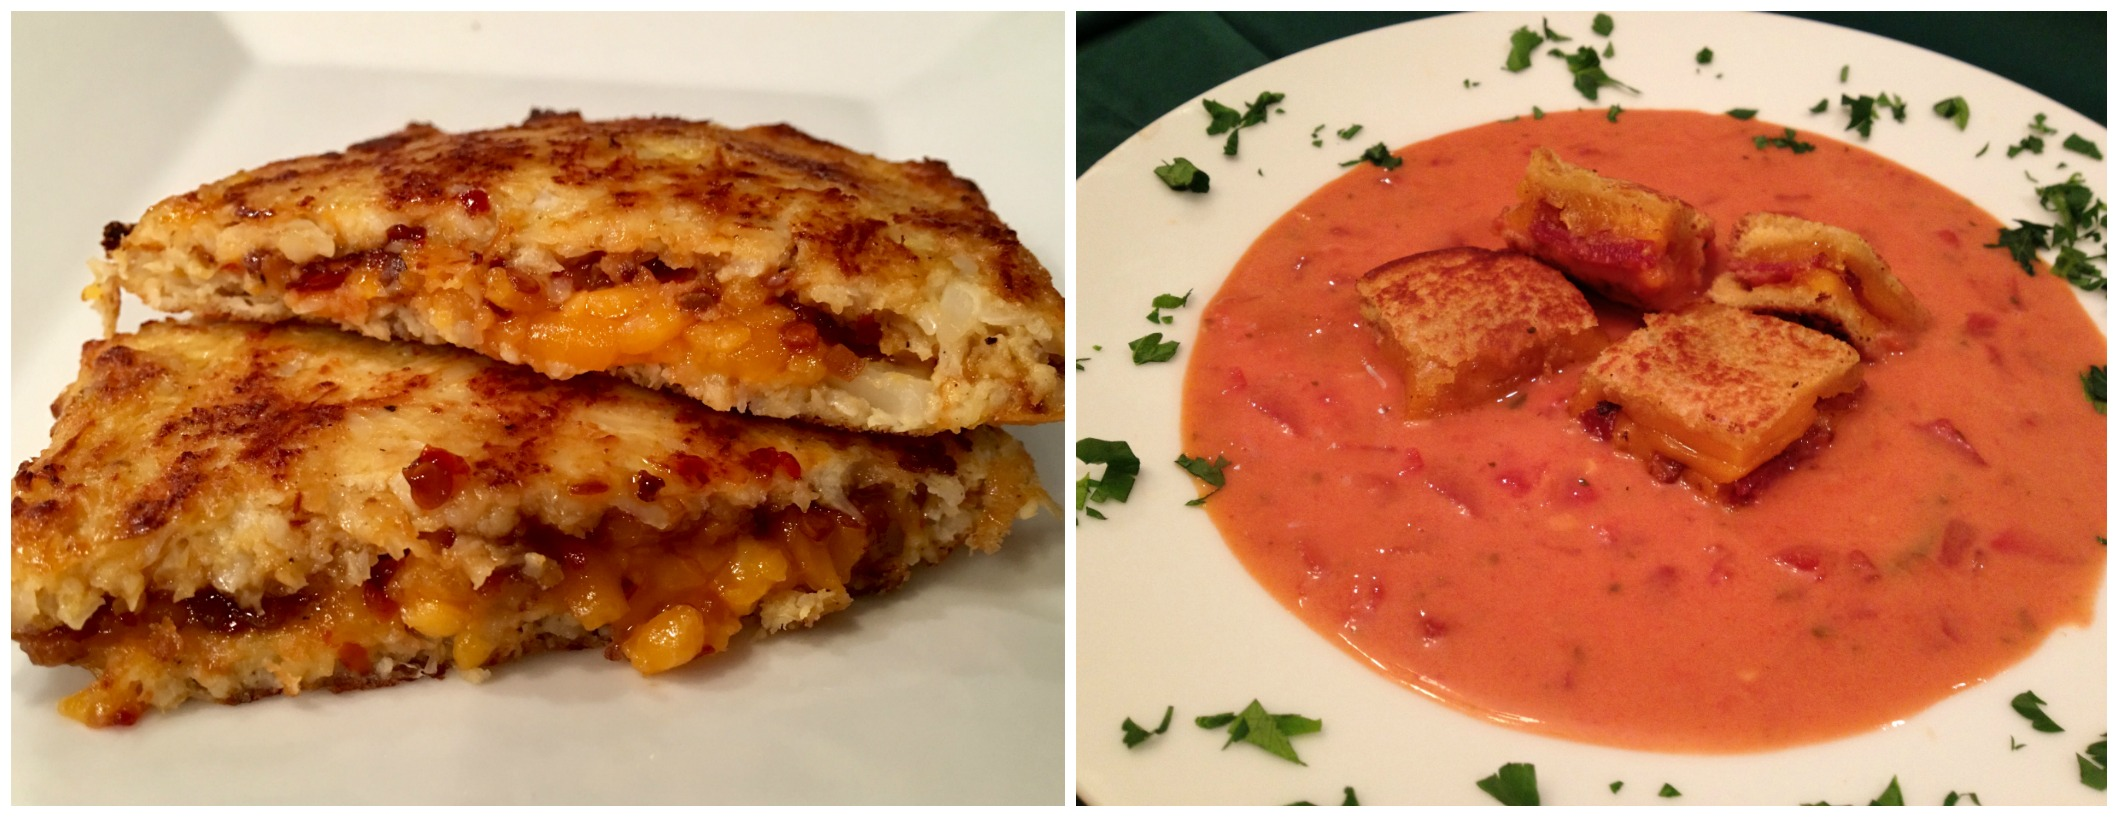 Cauiflower grilled cheese sandwich and tomato soup with grilled cheese croutons